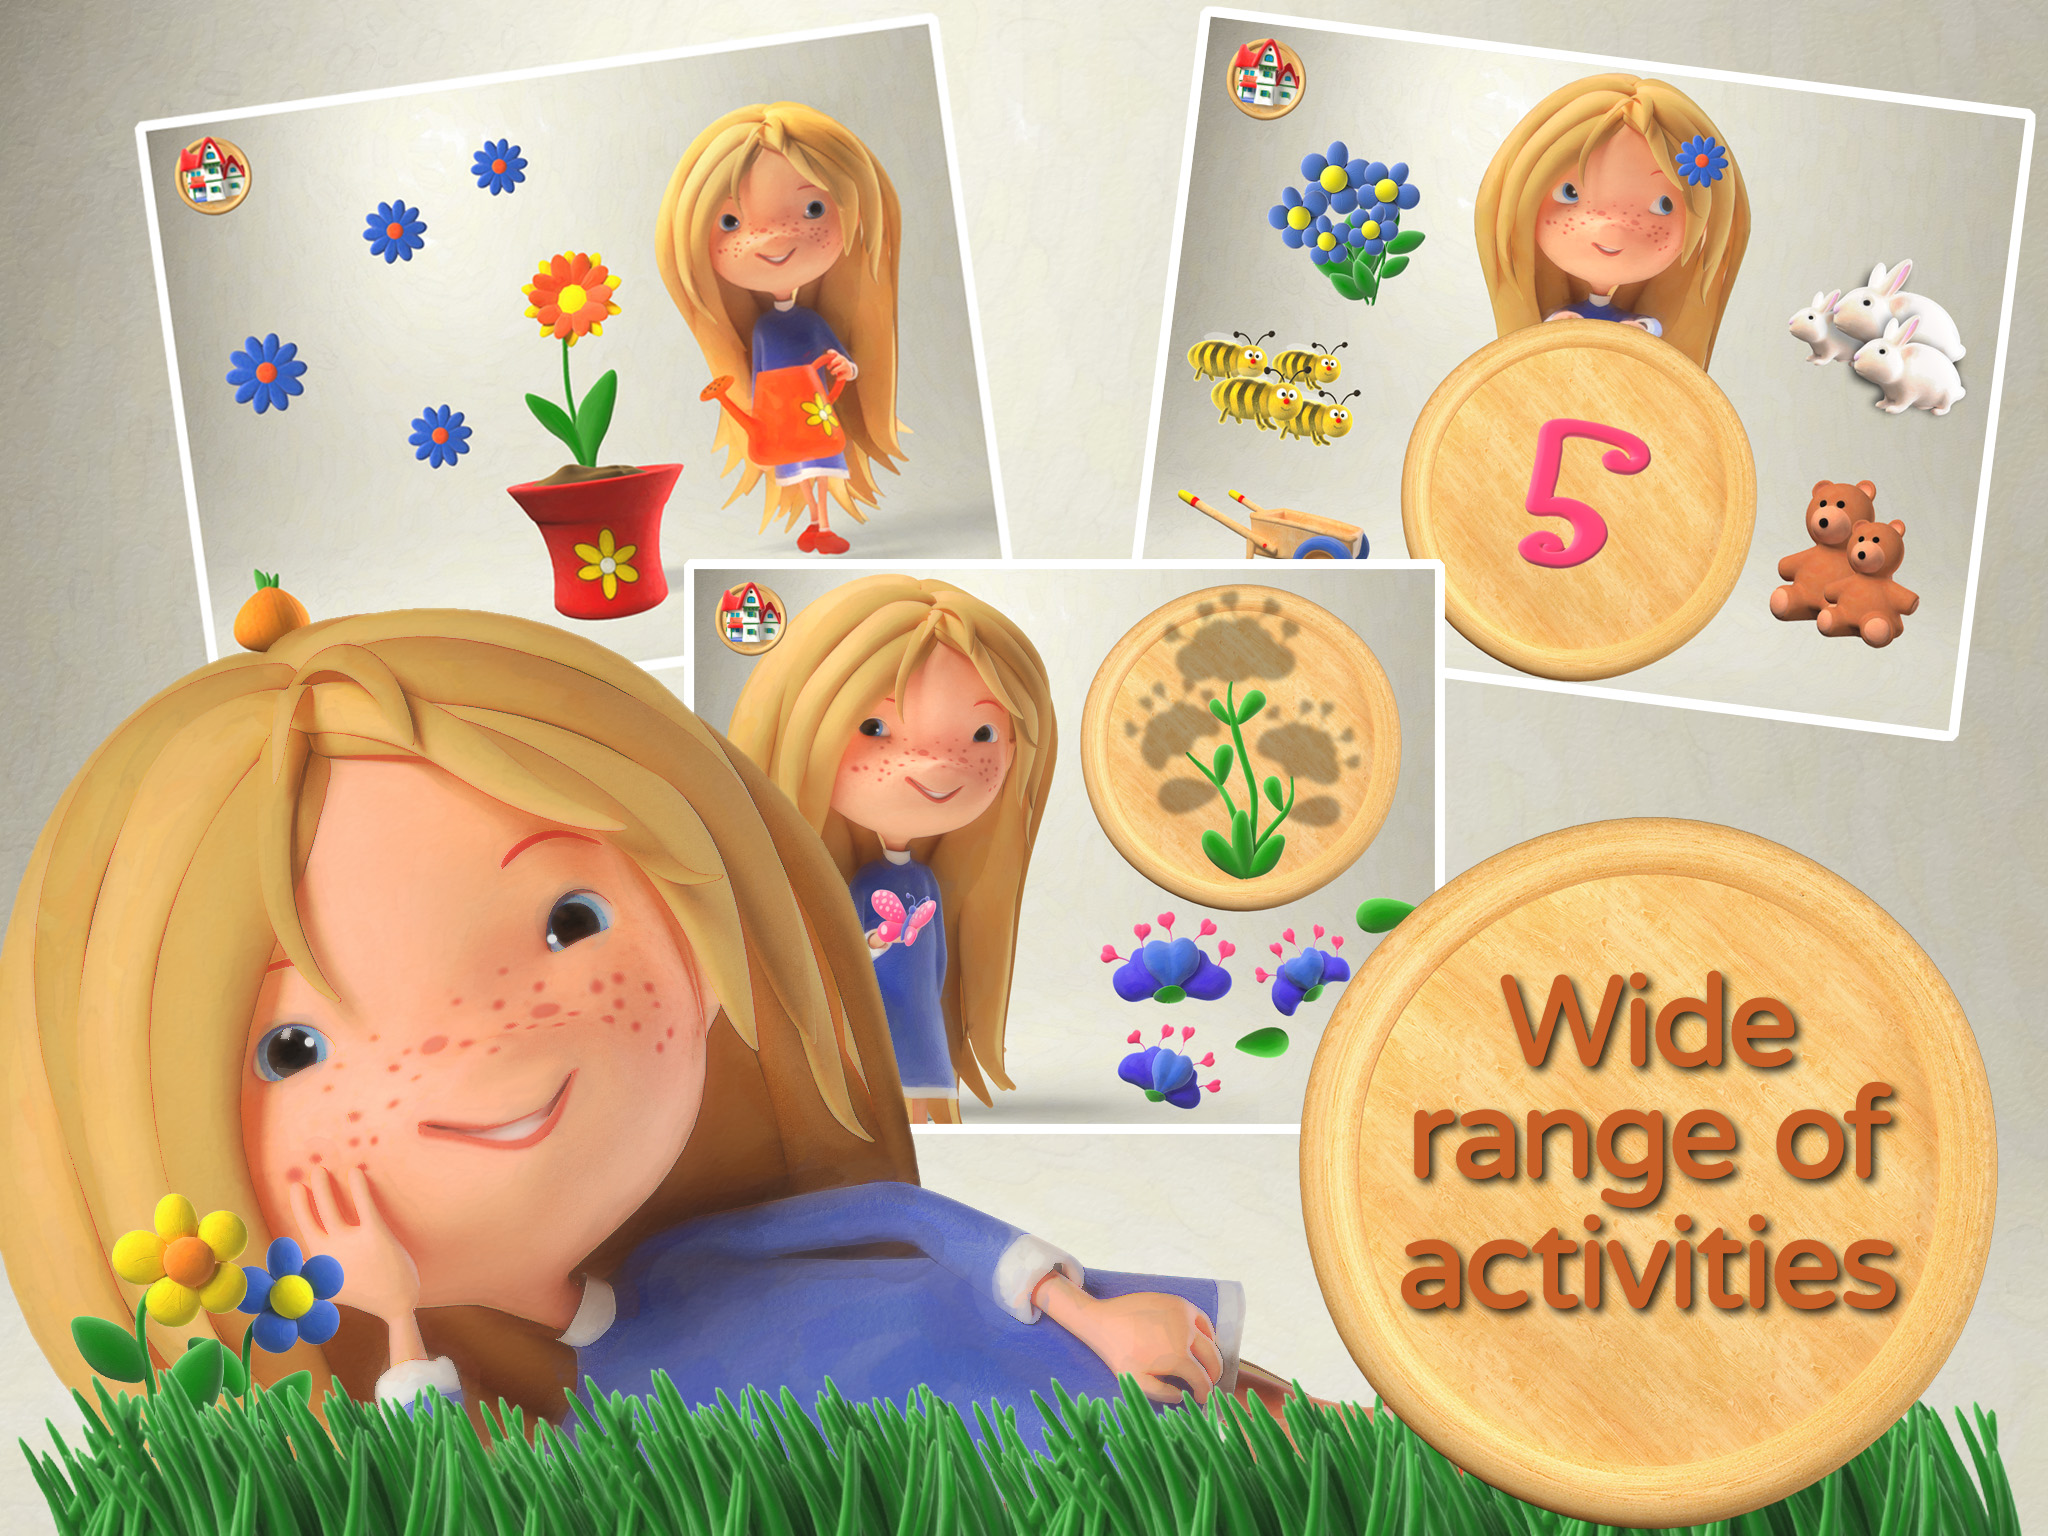 Play and Learn with Corabelle